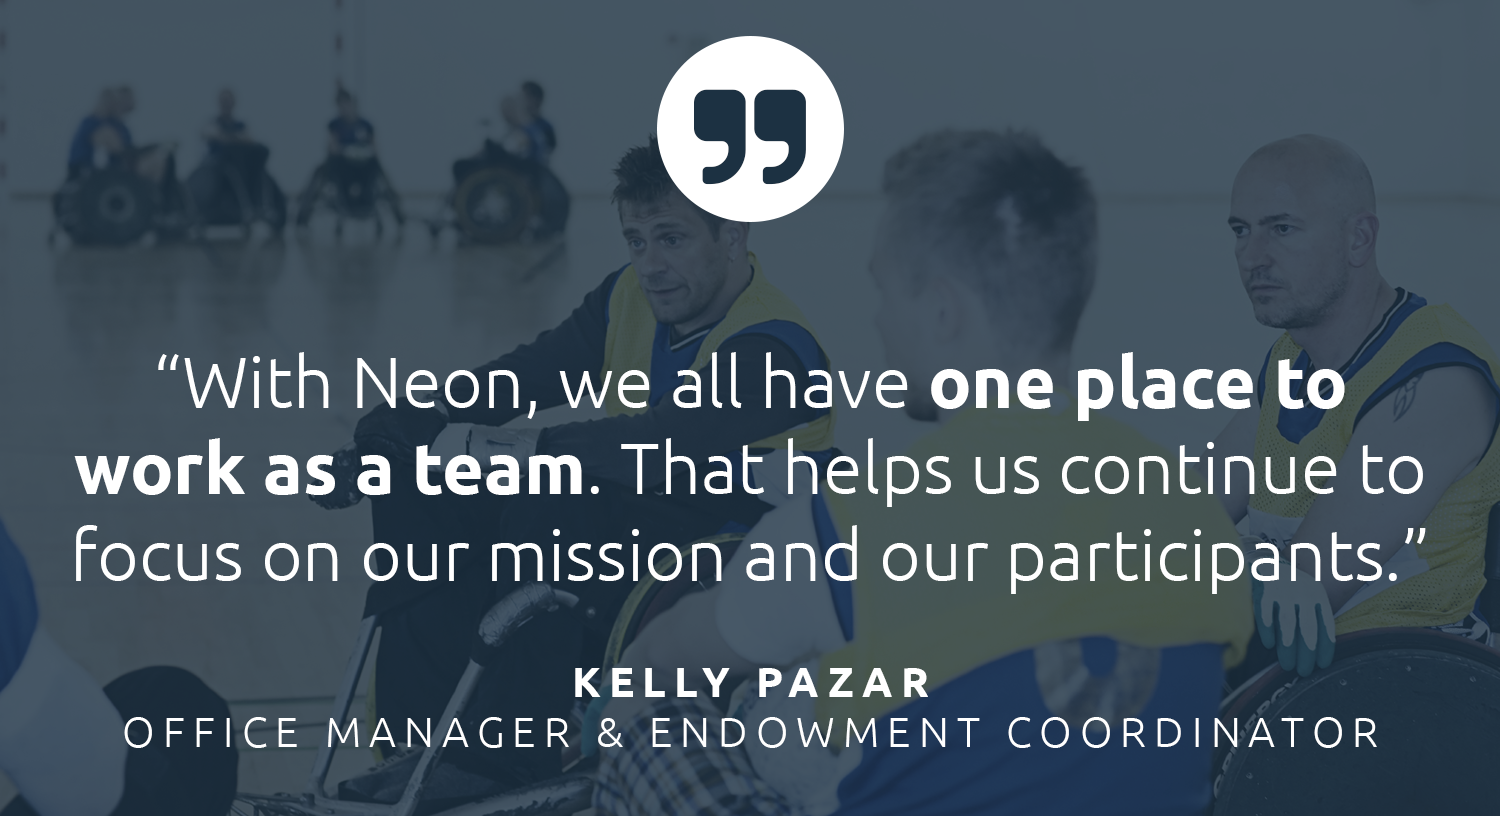 Neon serves as the core database for Challenge Aspen — so they can all work together as a team in one place.